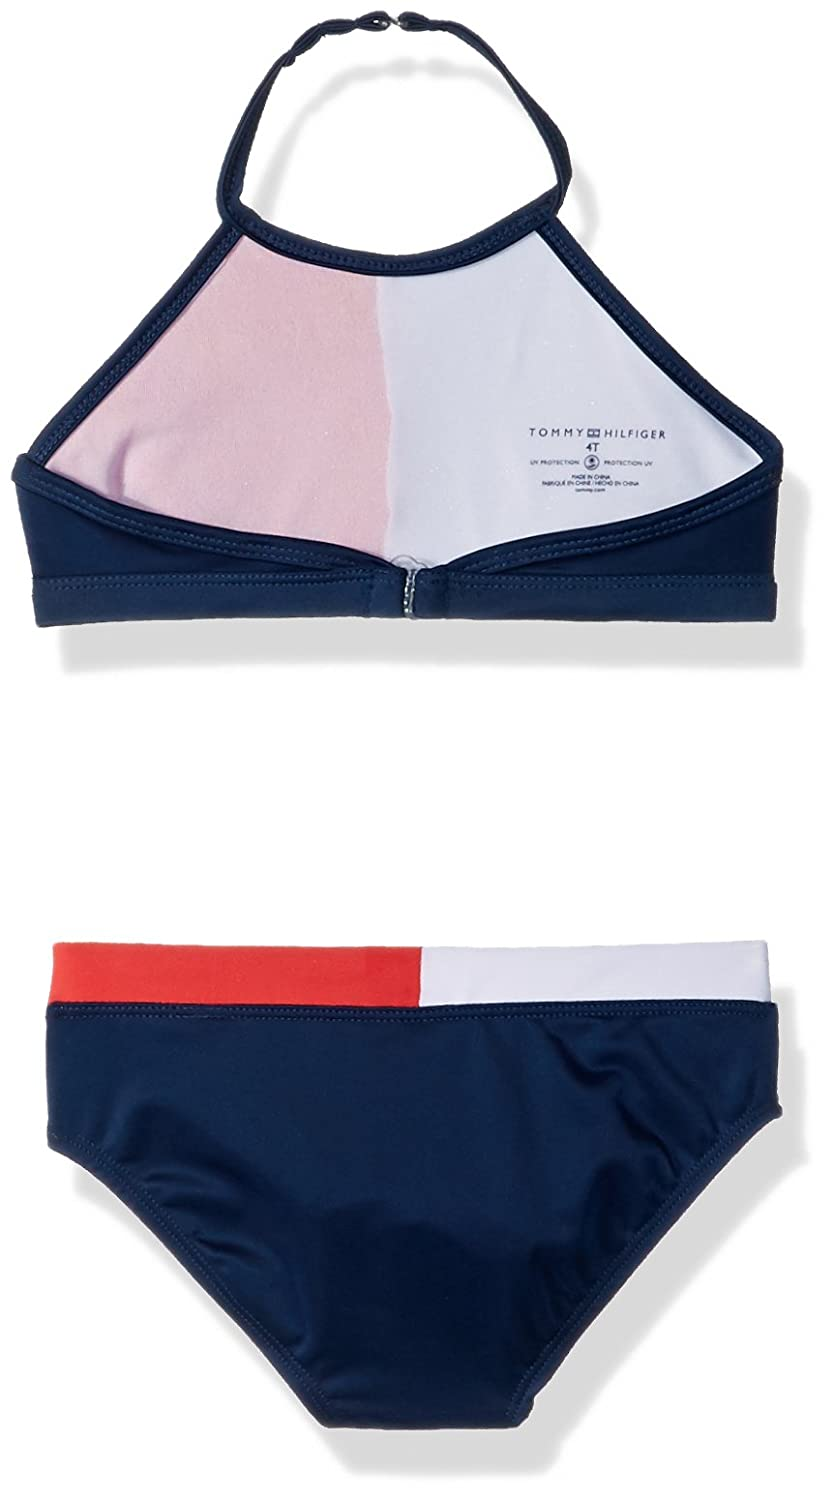 1cedfd7116 Amazon.com: Tommy Hilfiger Girls' Two-Piece Swimsuit: Clothing